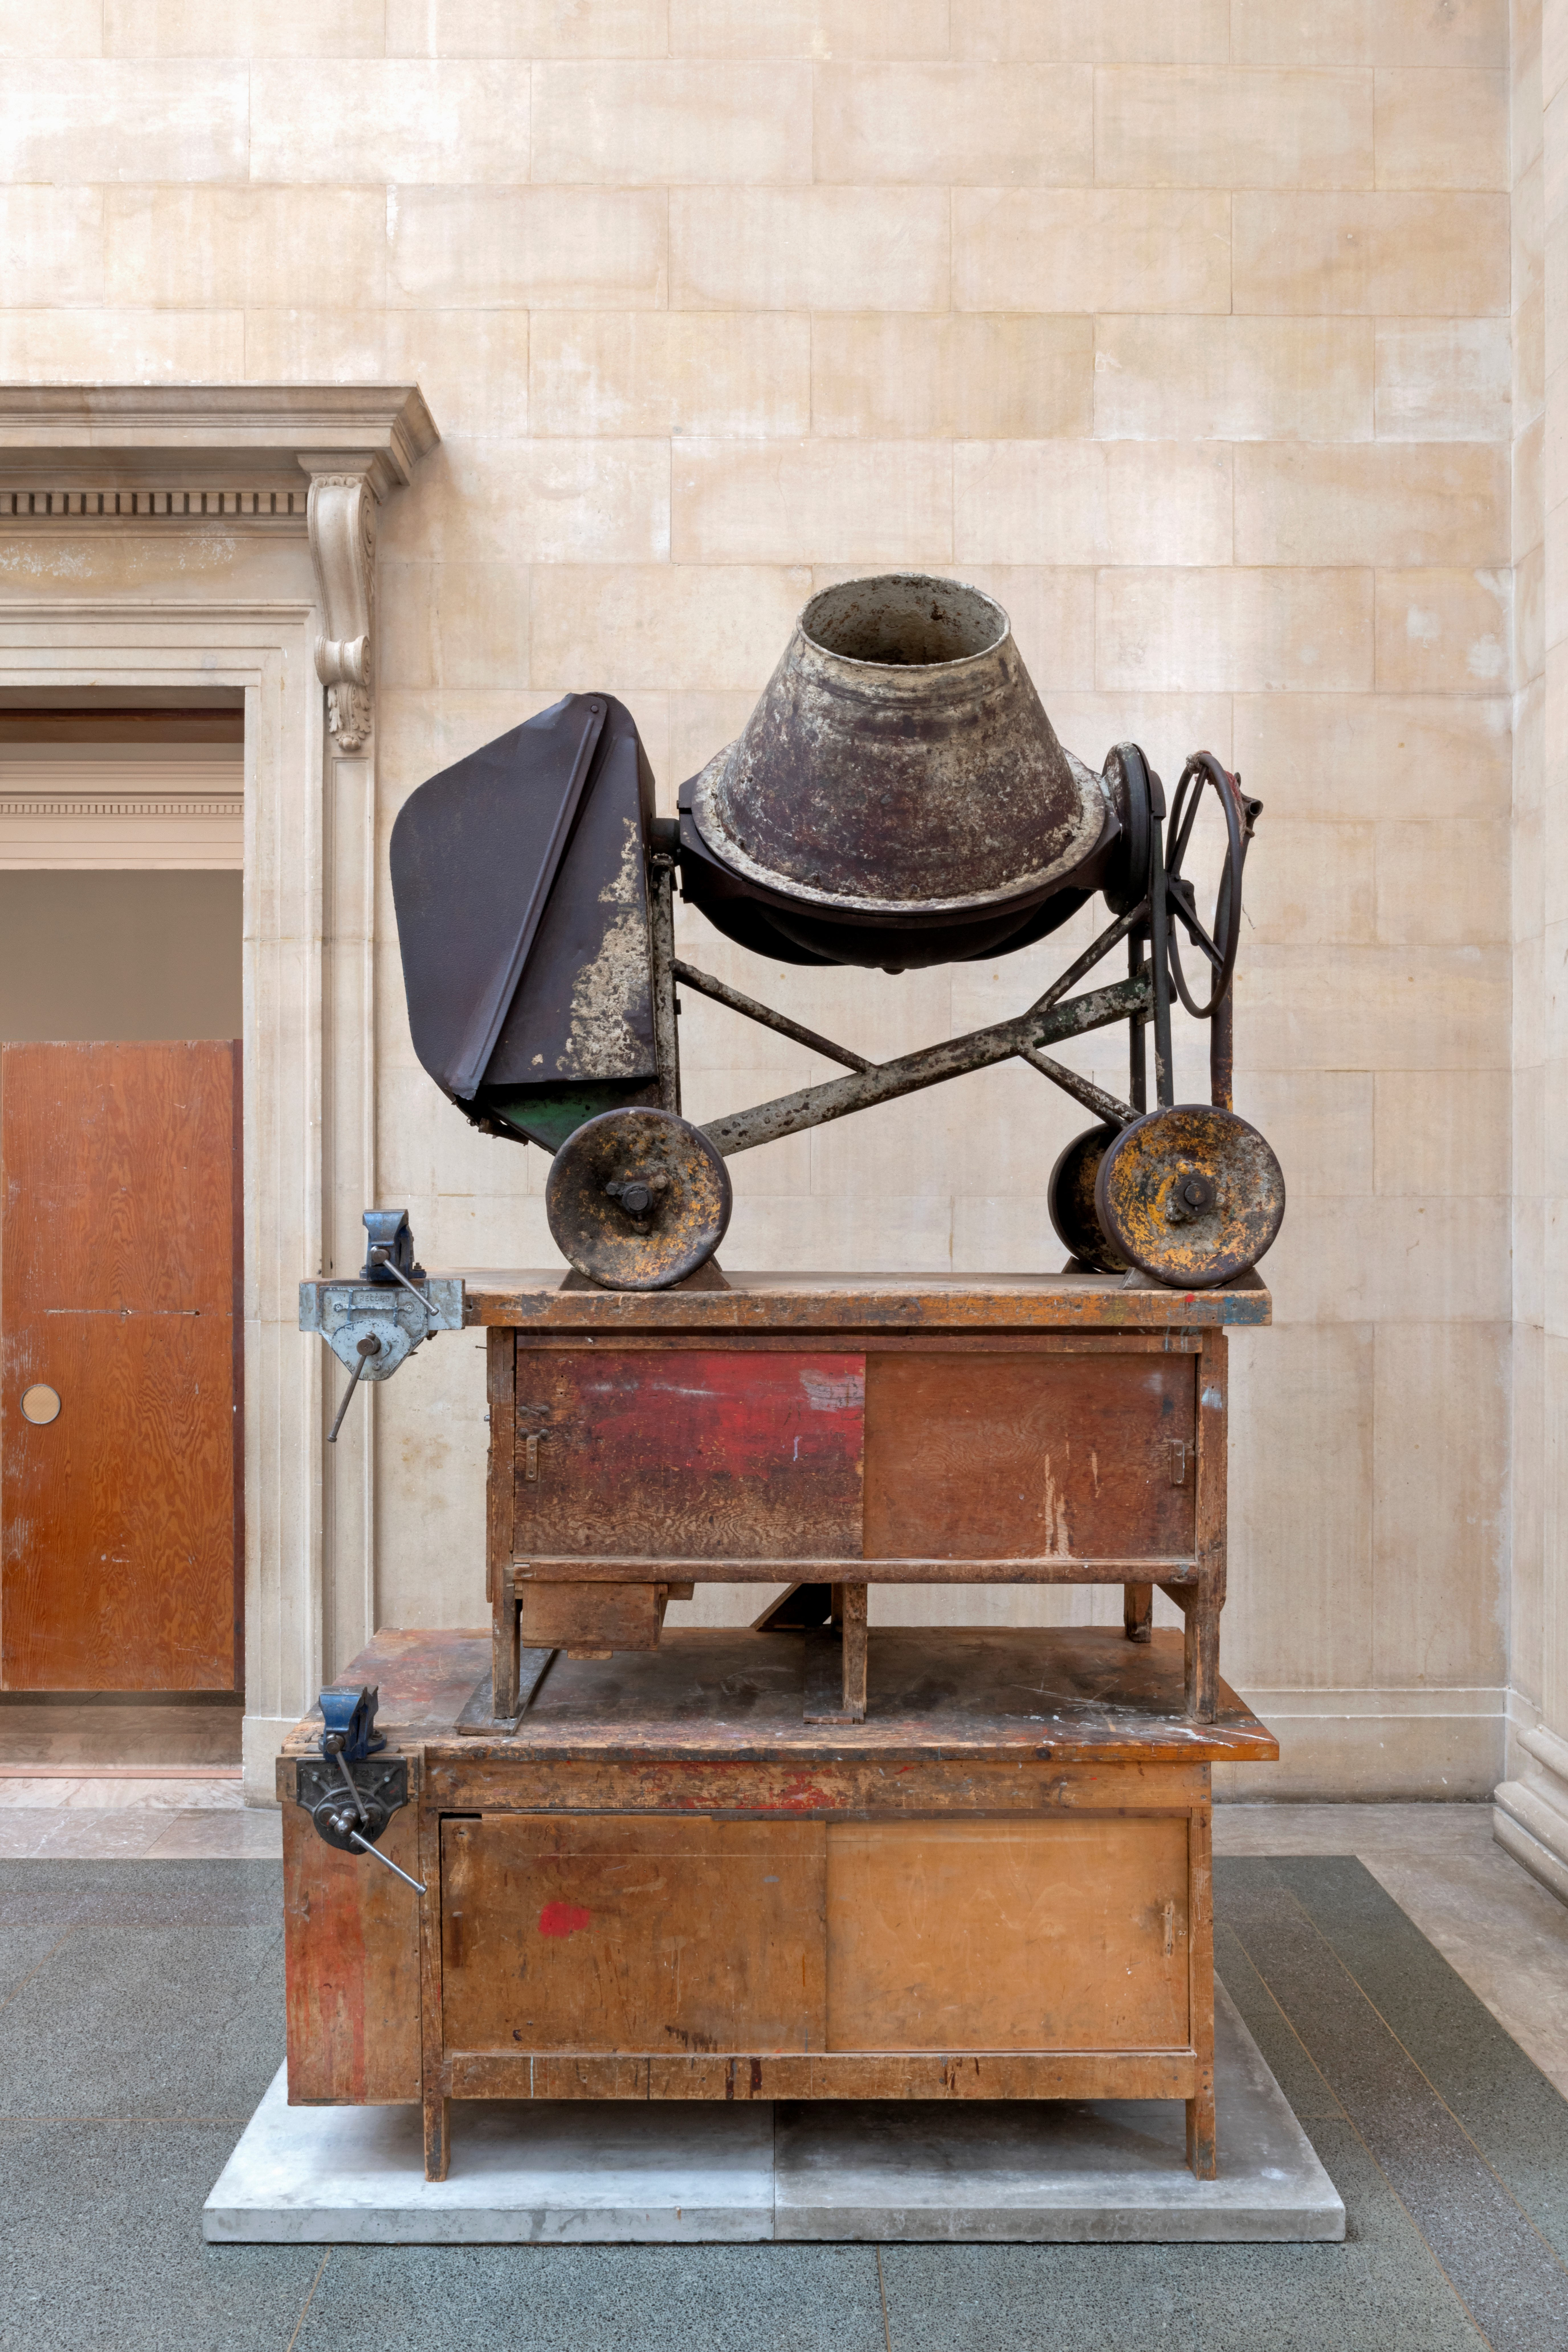 The Asset Strippers at Tate Britain